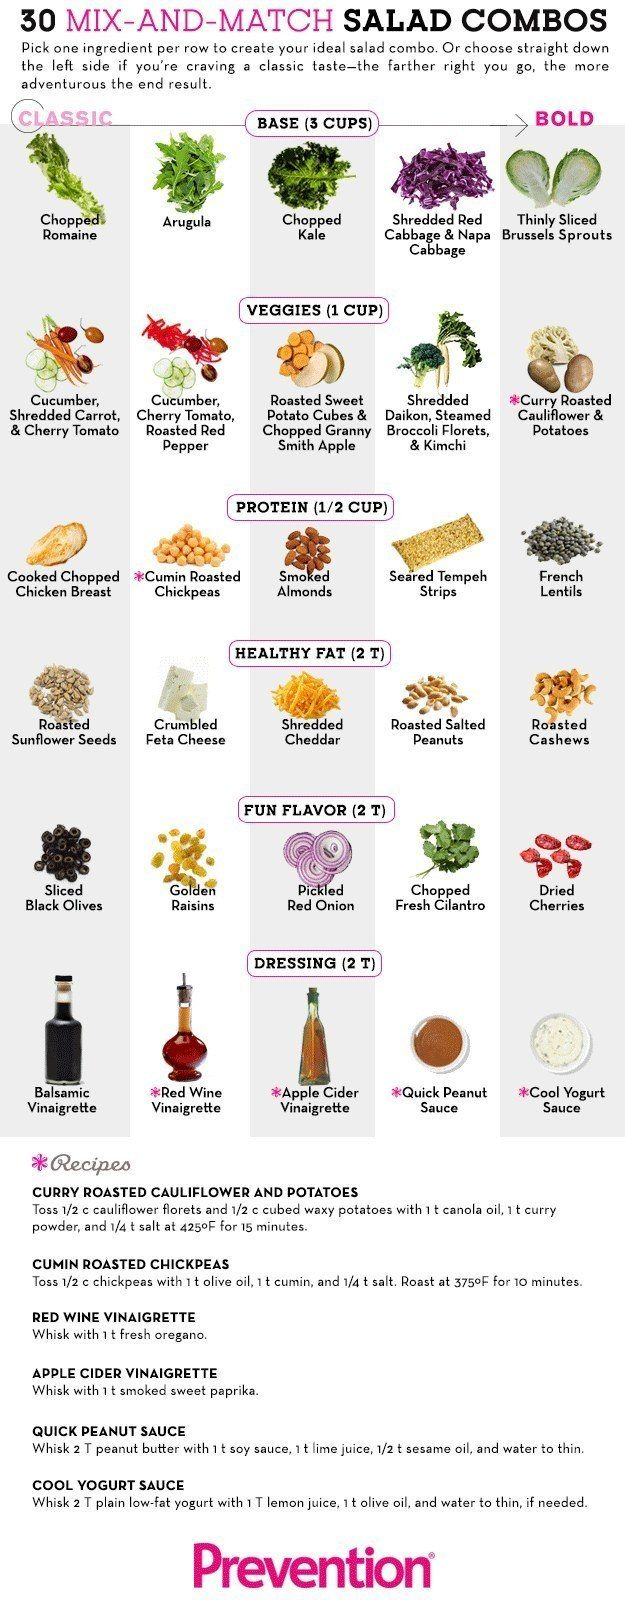 24 Must-See Diagrams That Will Make Eating Healthy Super Easy